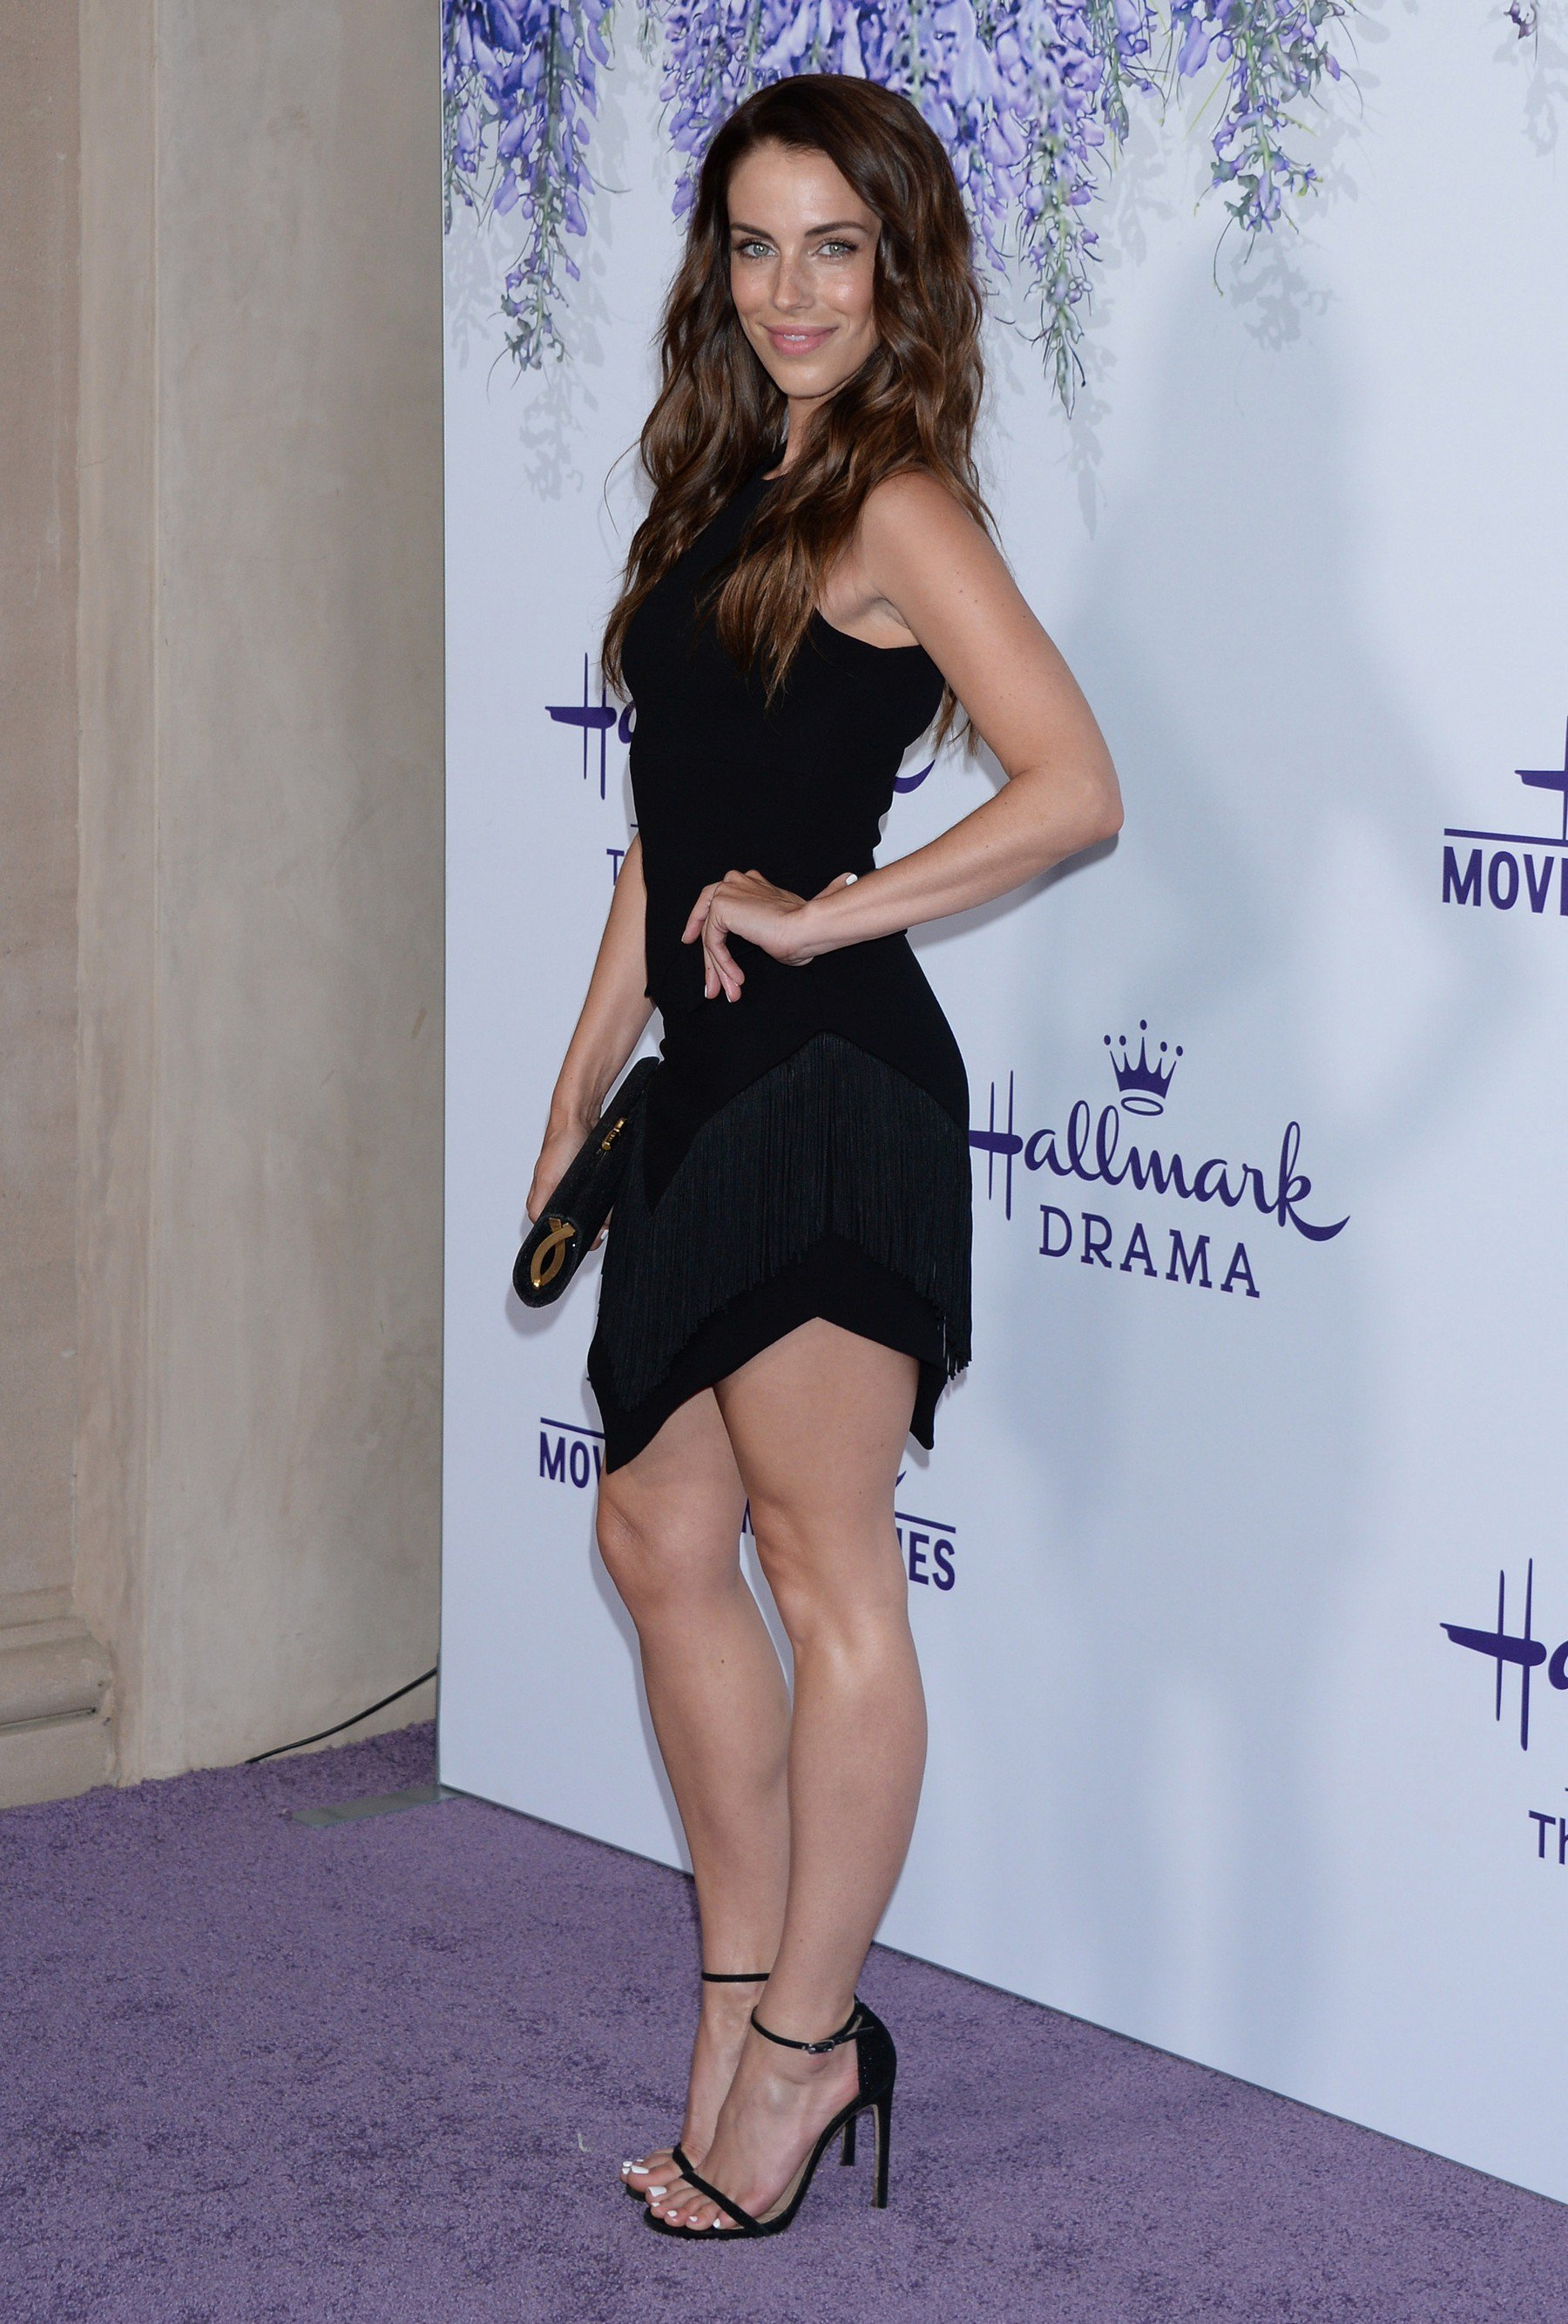 Jessica Lowndes Showing Off Her Sexy Legs In A Short Black Dress